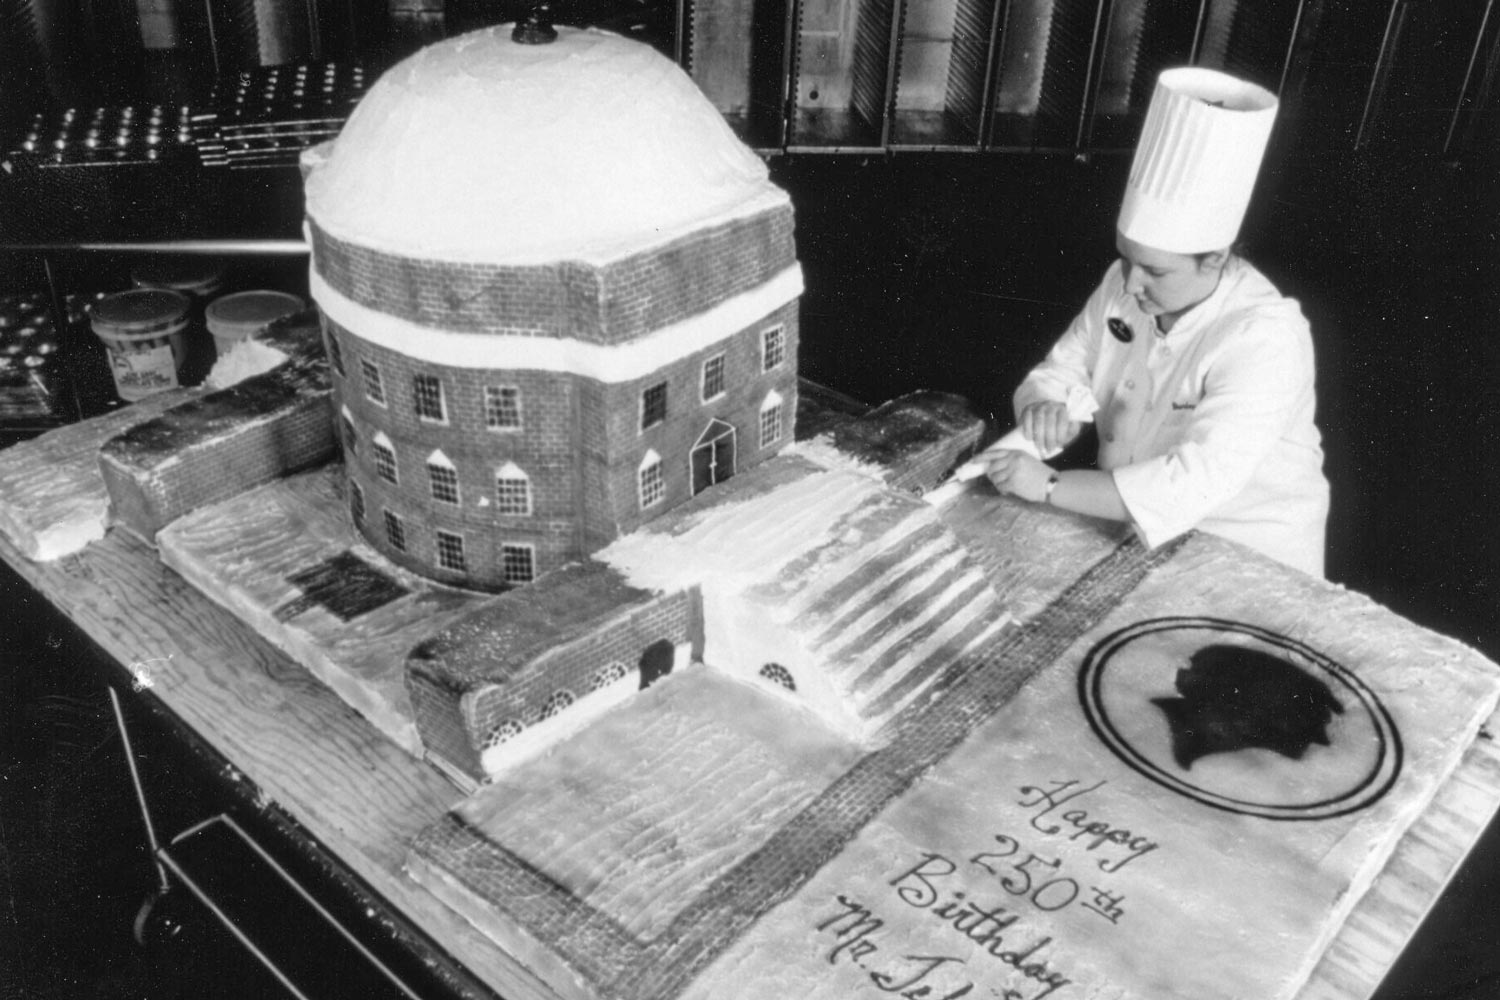 This giant Rotunda cake was presented in honor of Thomas Jefferson's 250th birthday in 1993.